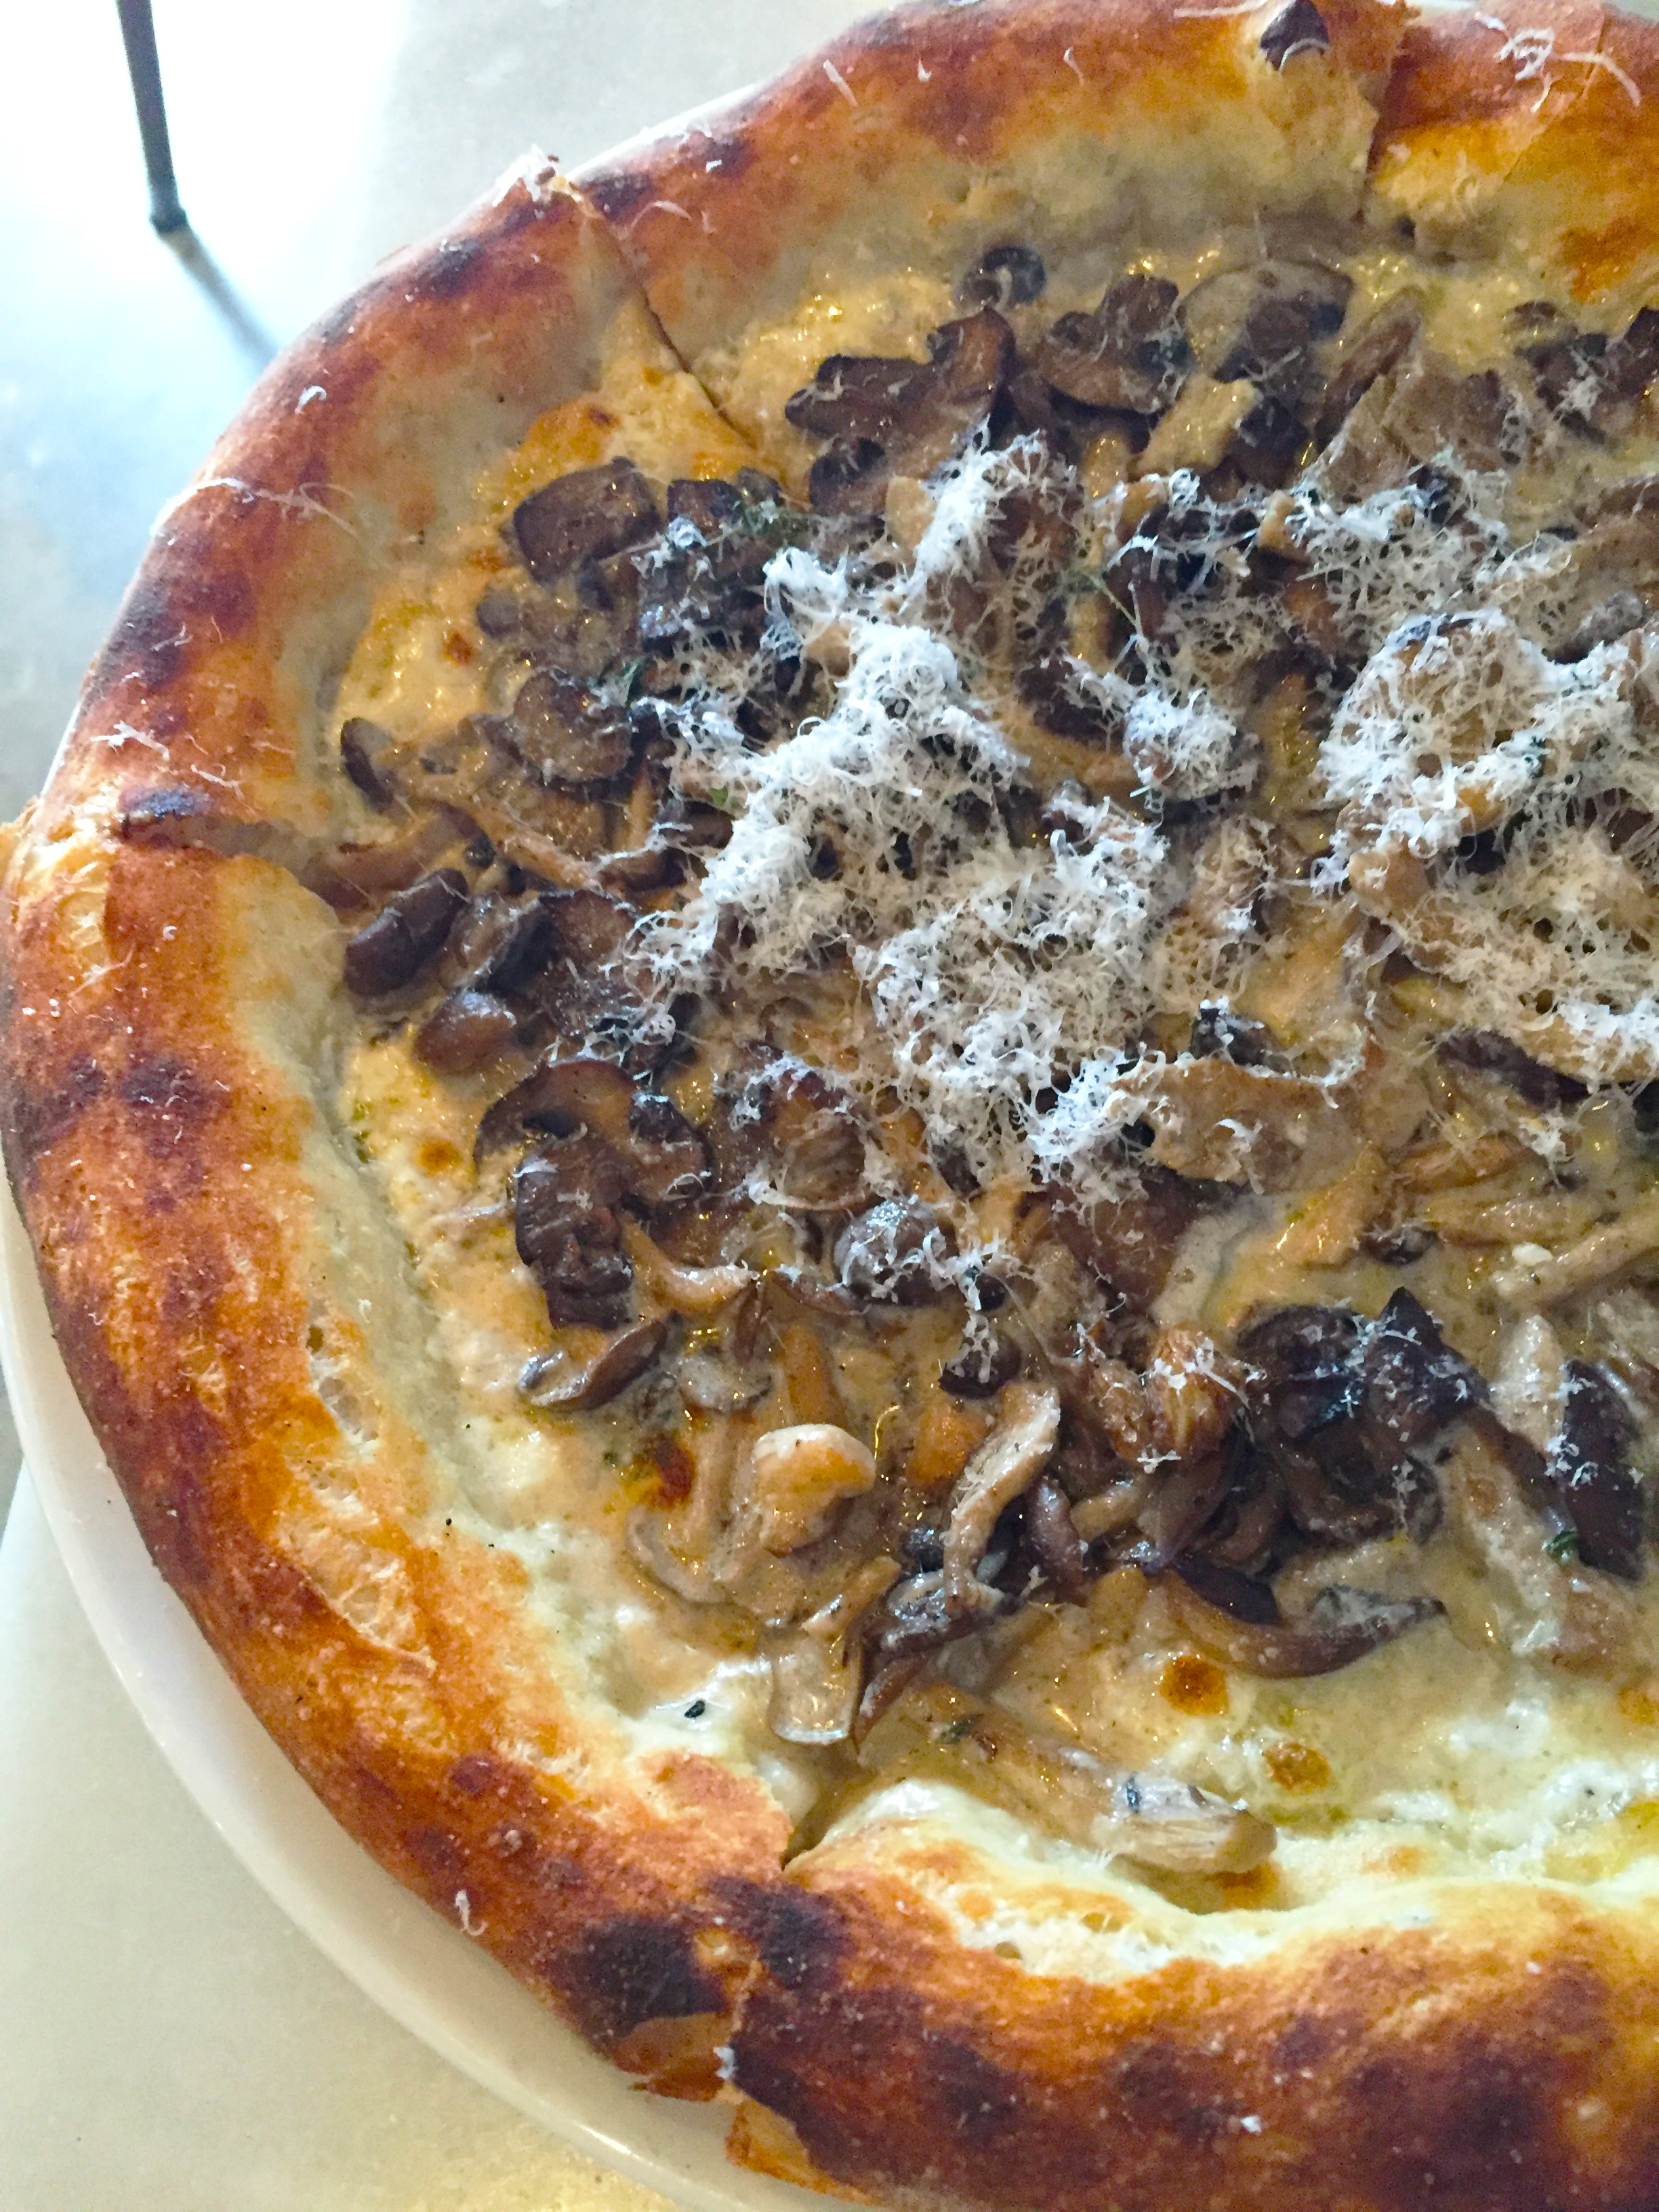 Mixed Mushroom Pizza with fontina val d'aosta, thyme, lemon zest, and parmesan.